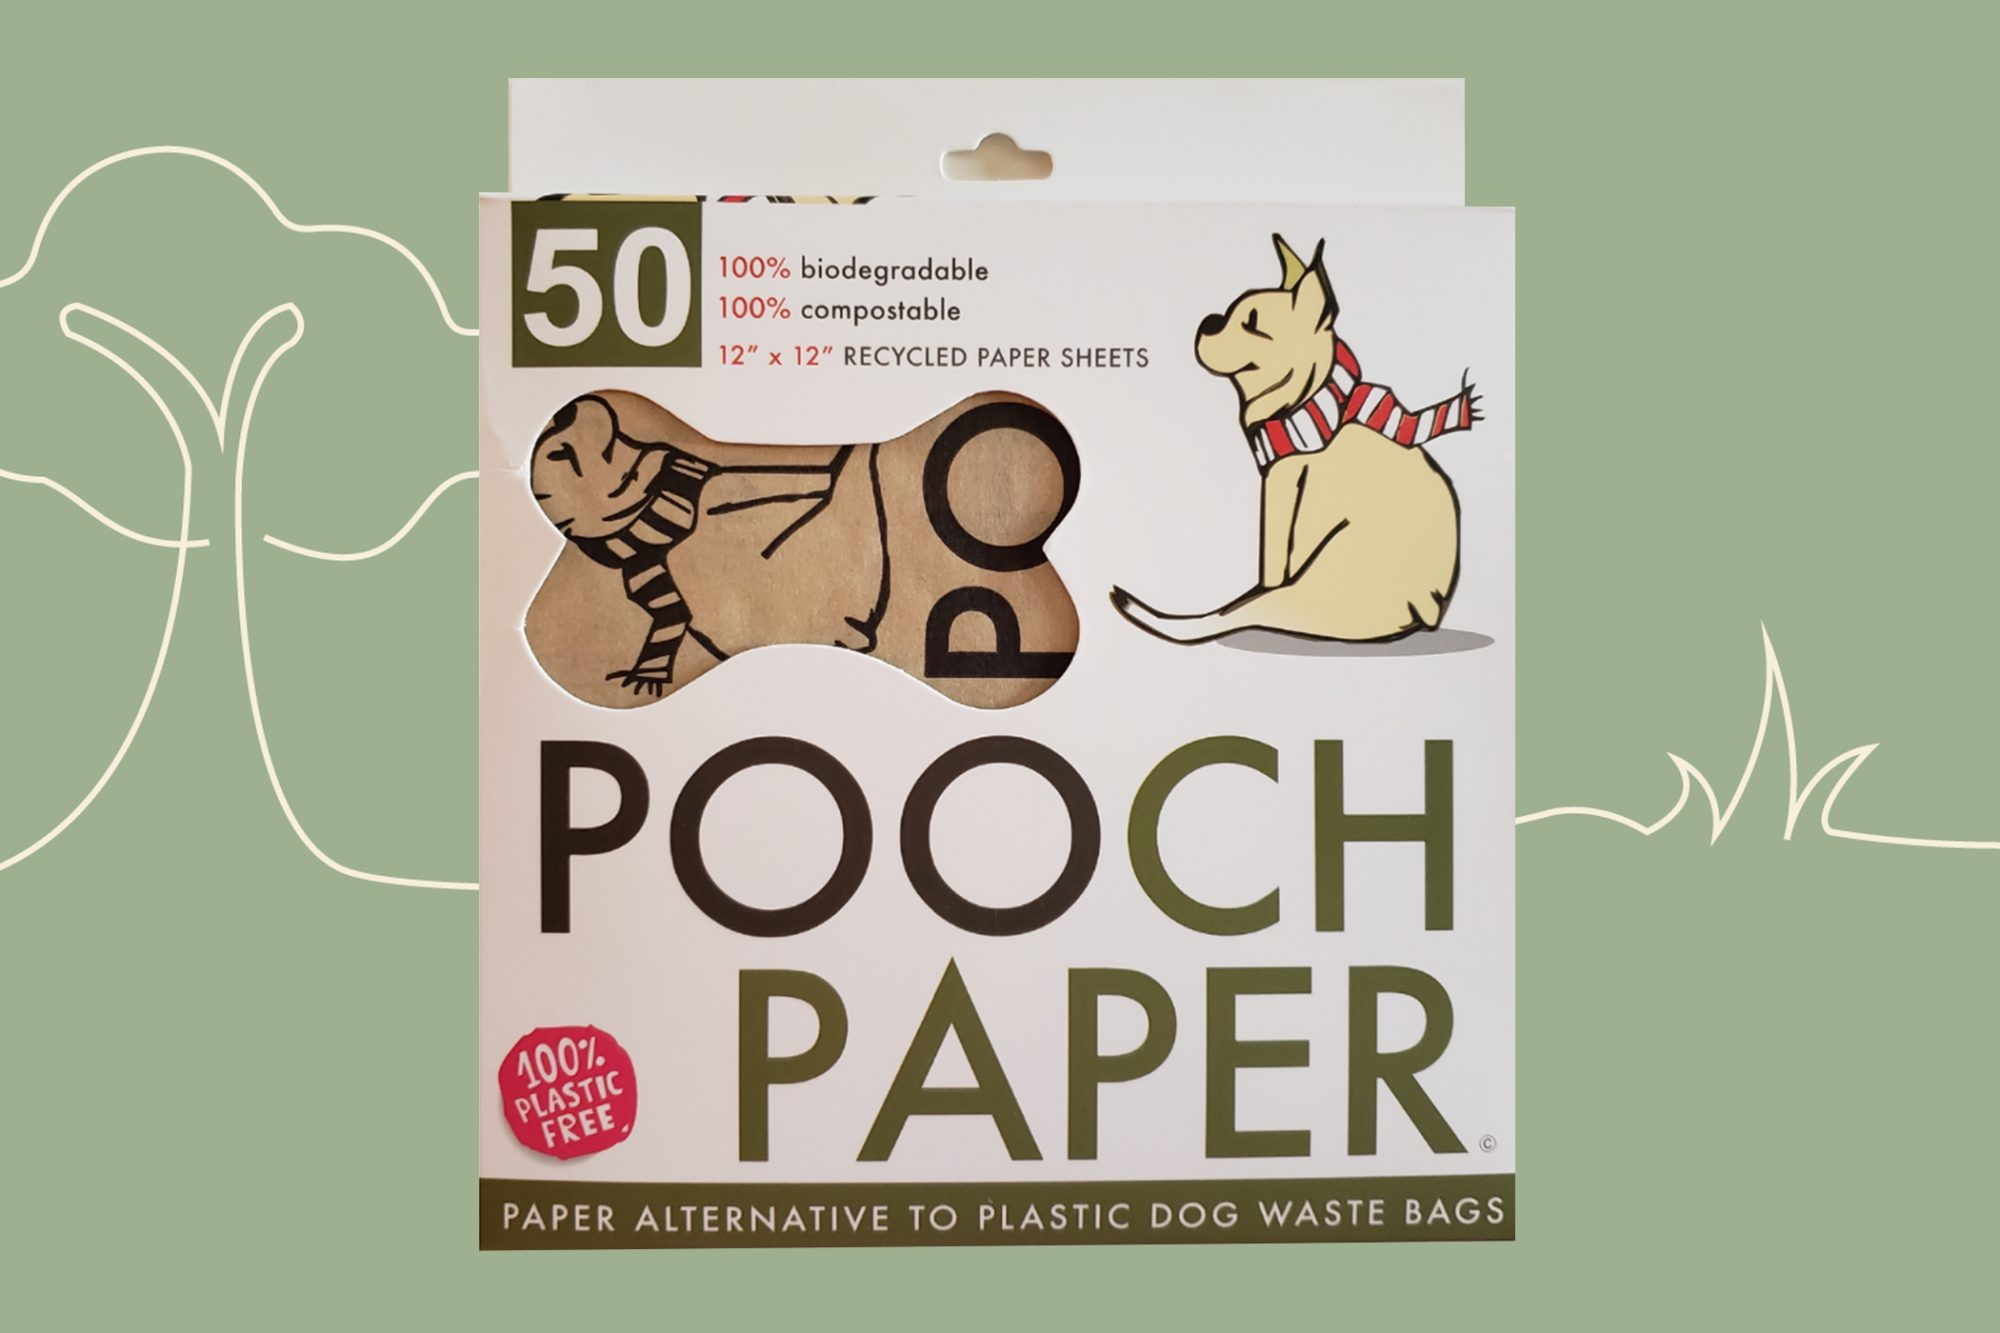 pooch paper package, a paper alternative to plastic dog waste bags